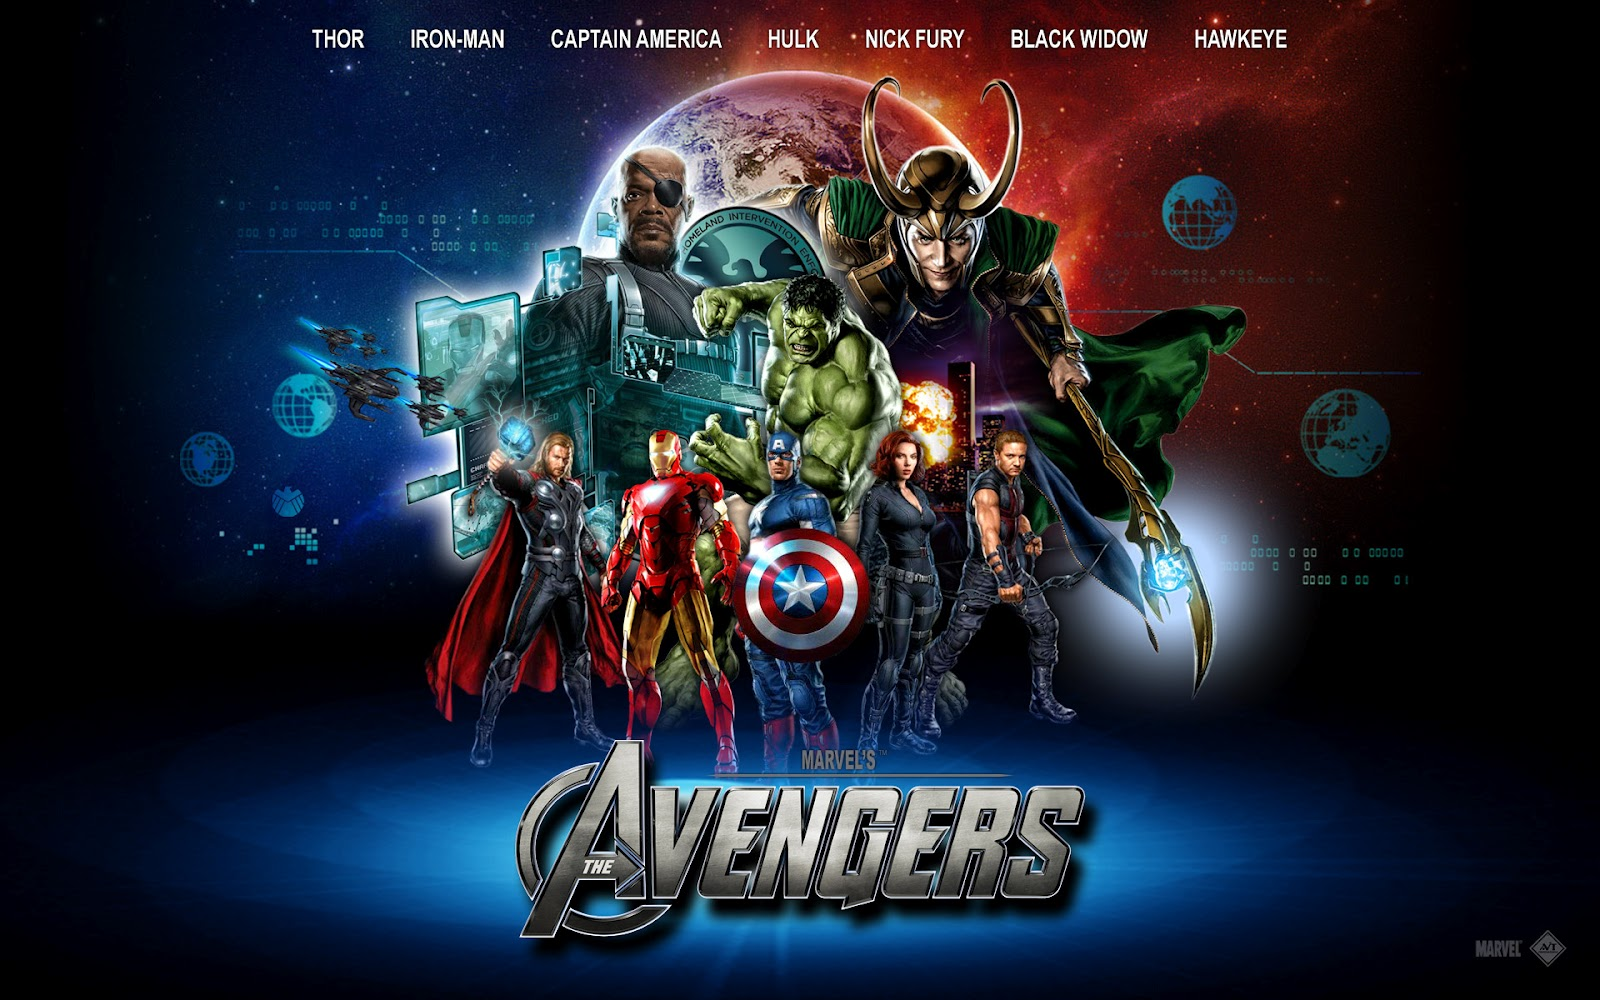 The Avengers-31-1920x1200 | New Movies Wallpapers